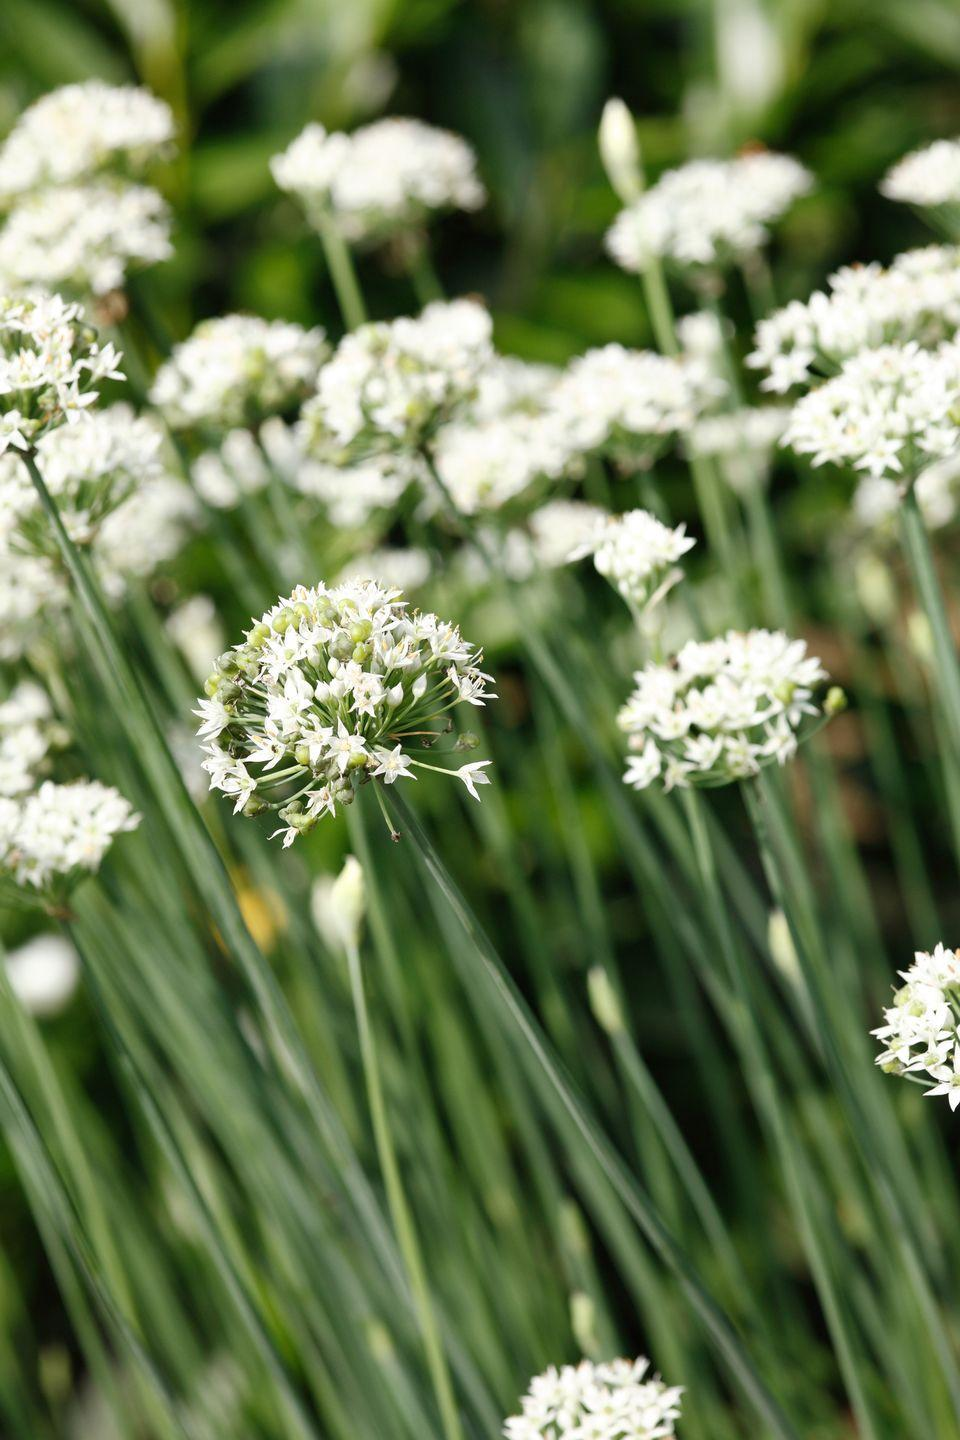 """<p>As you might have guessed, garlic chives offer a mild garlic flavor. Both the leaves and white flowers, which appear in late summer, are totally edible.</p><p><a class=""""link rapid-noclick-resp"""" href=""""https://go.redirectingat.com?id=74968X1596630&url=https%3A%2F%2Fwww.edenbrothers.com%2Fstore%2Fgarlic-chives-seeds.html&sref=https%3A%2F%2Fwww.thepioneerwoman.com%2Fhome-lifestyle%2Fgardening%2Fg36533467%2Fbest-perennial-herbs%2F"""" rel=""""nofollow noopener"""" target=""""_blank"""" data-ylk=""""slk:SHOP NOW"""">SHOP NOW</a></p>"""